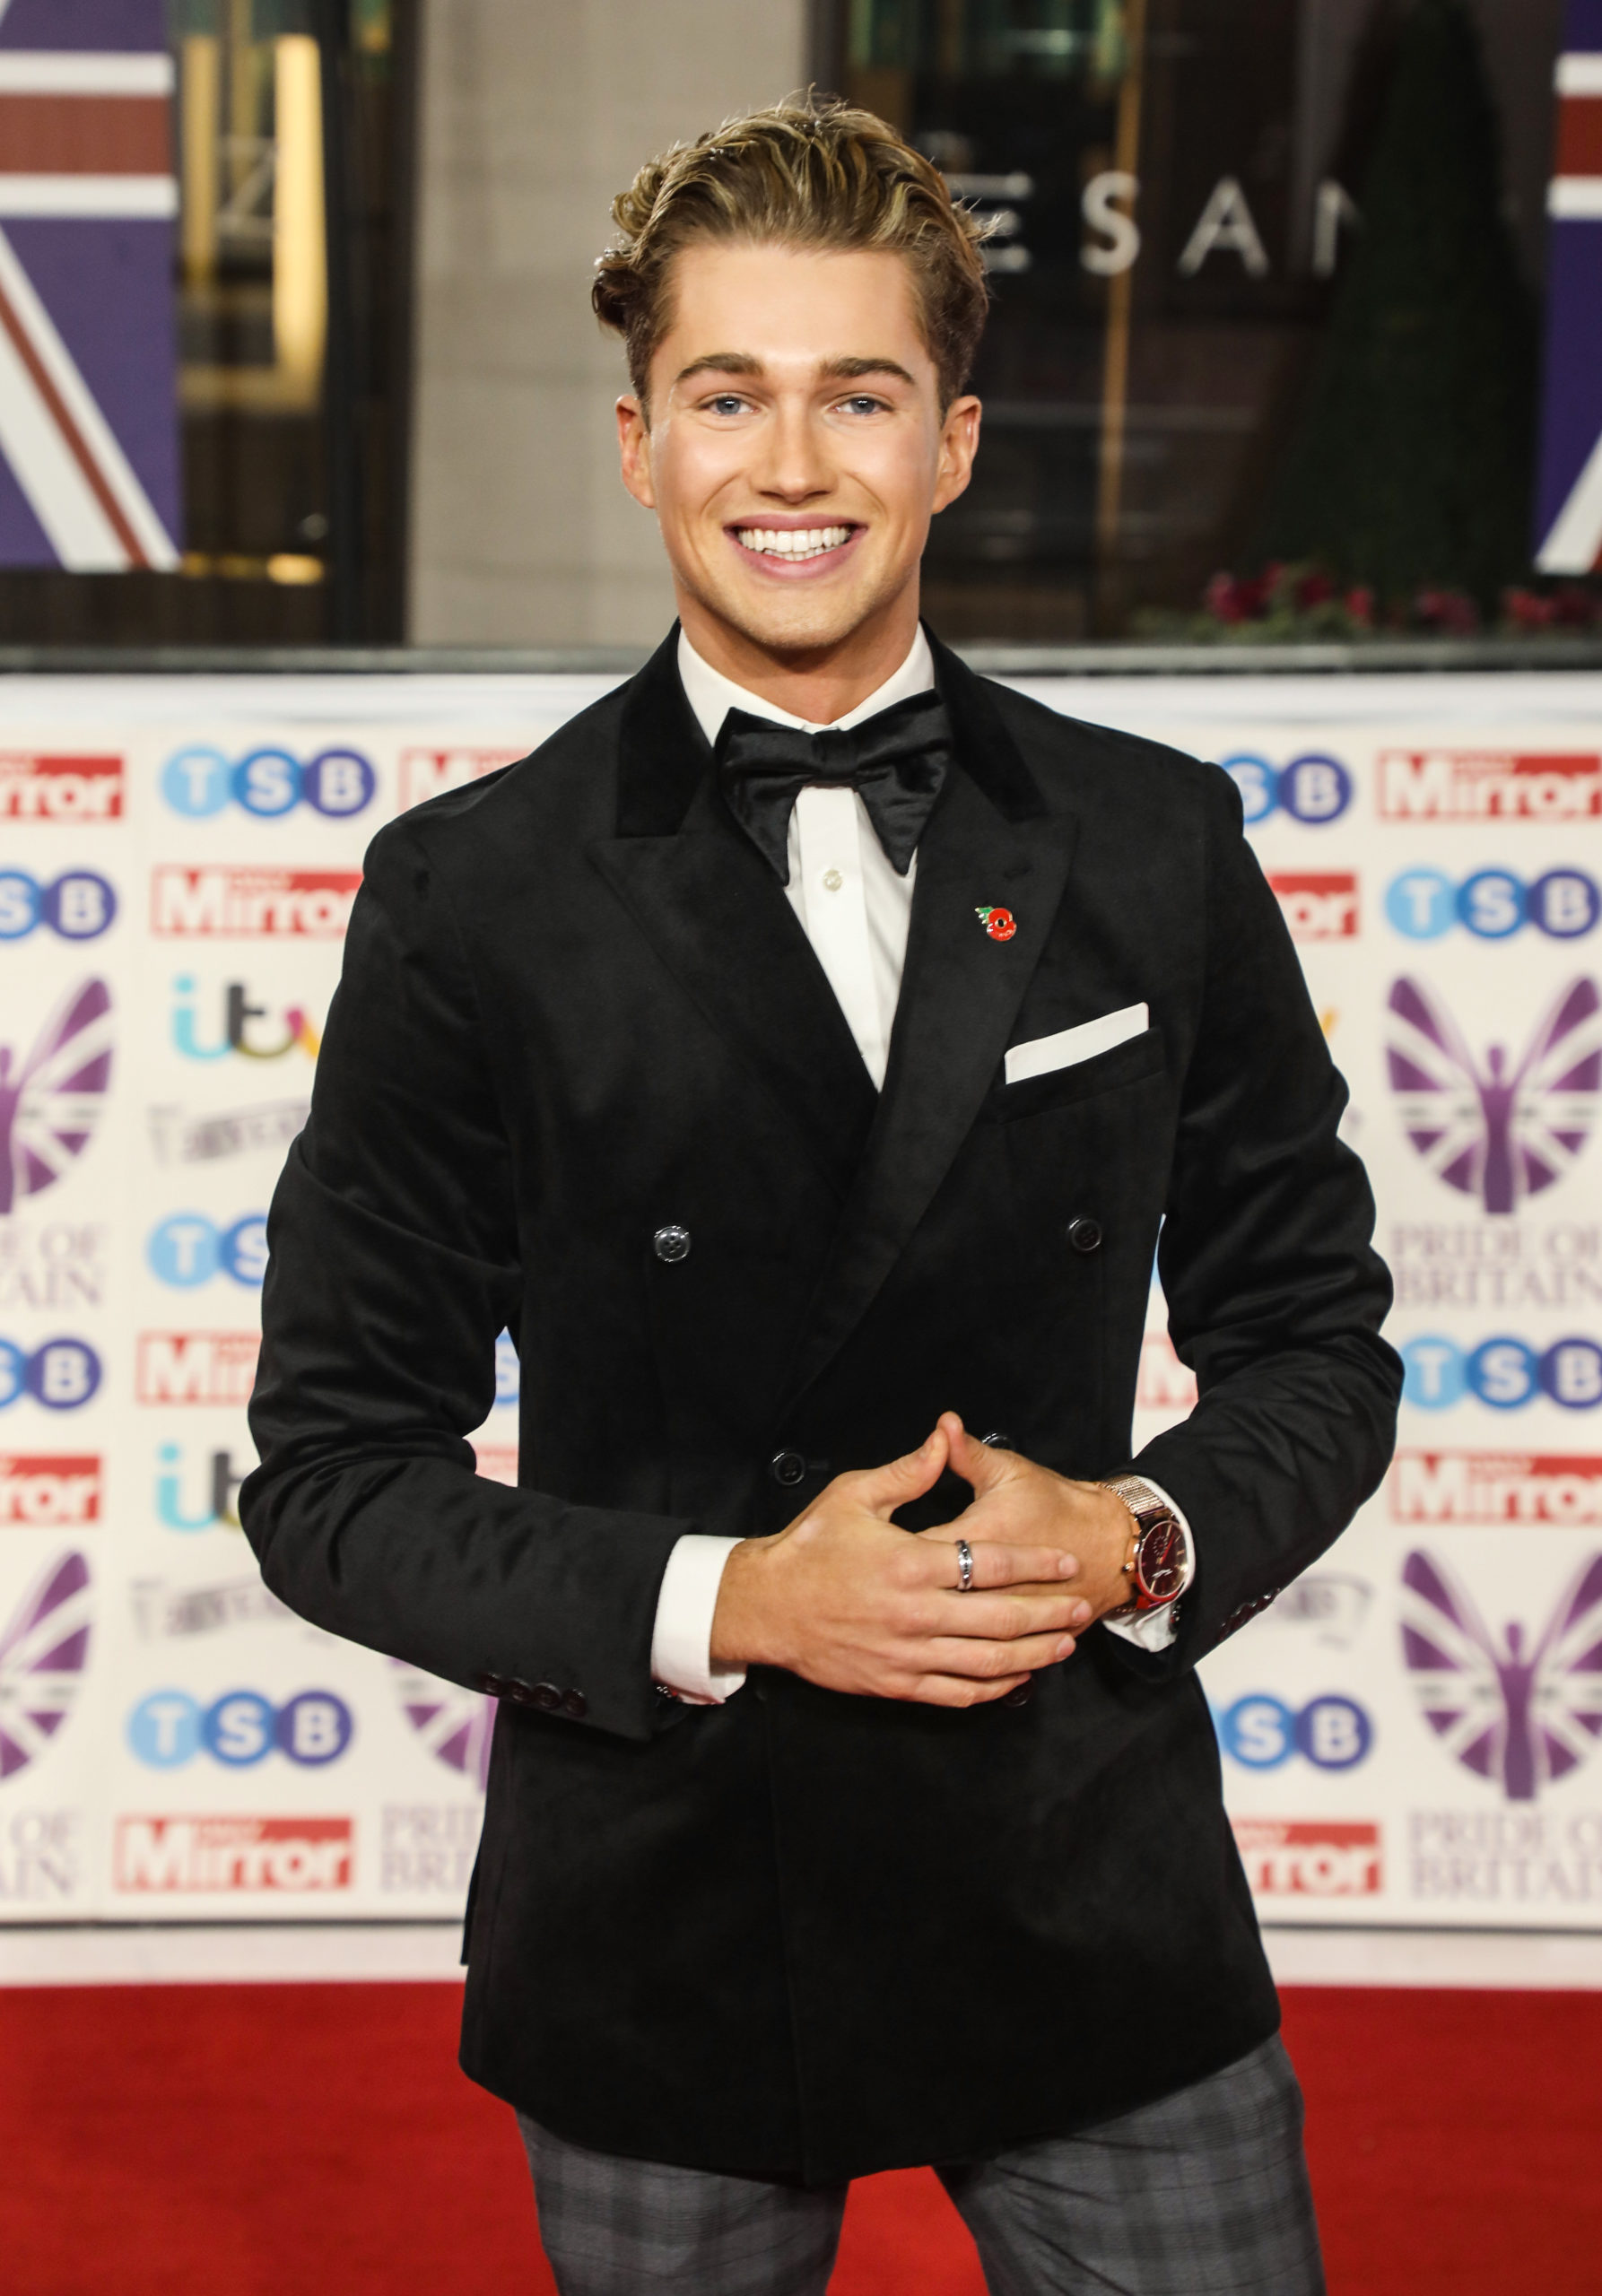 AJ Pritchard on the red carpet